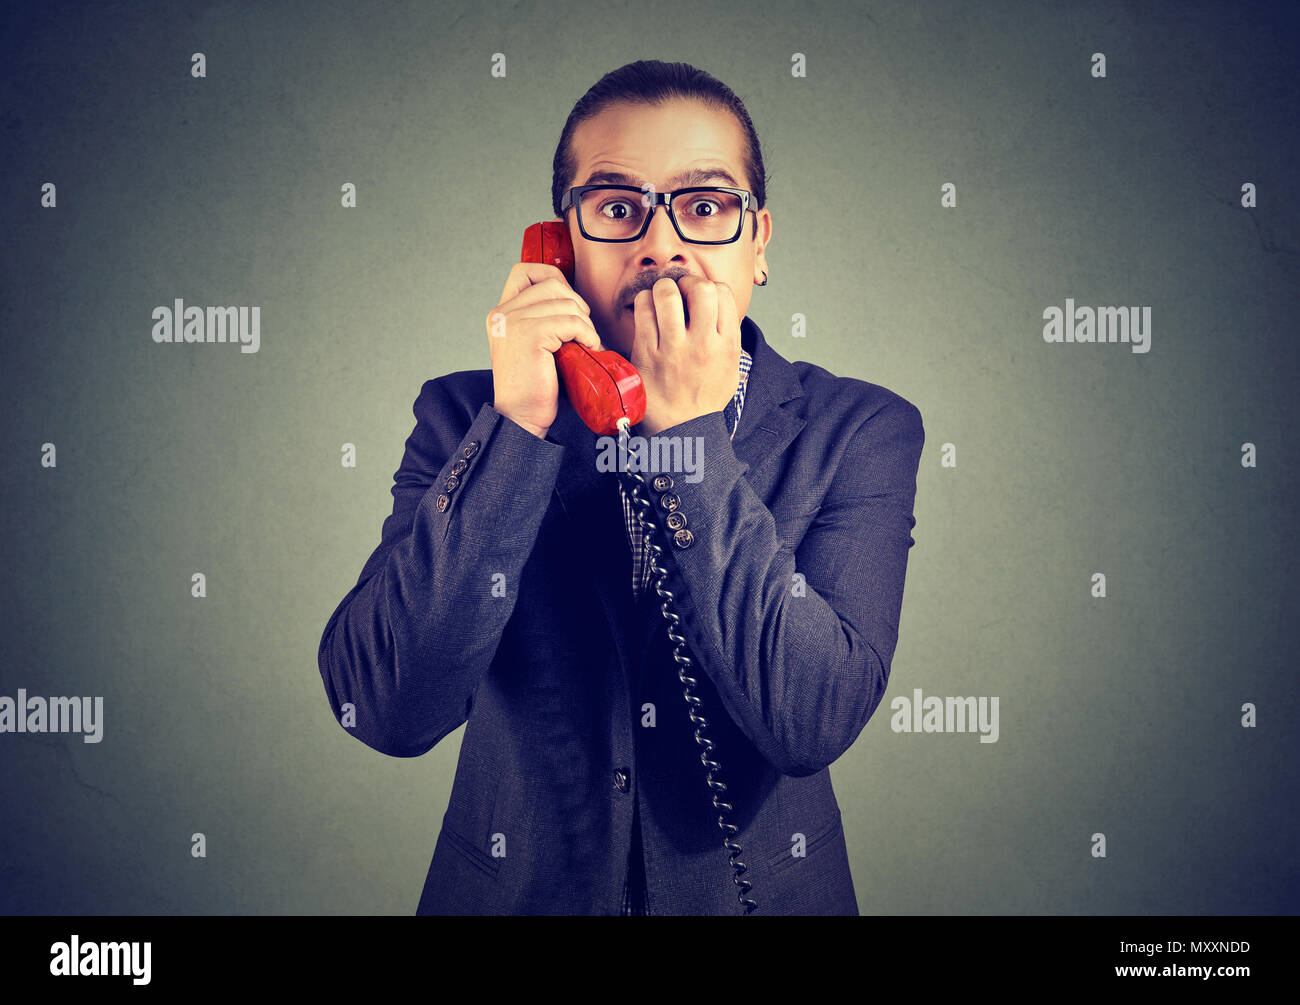 Stylish man in suit receiving shocking news on phone and looking at camera with fear. - Stock Image